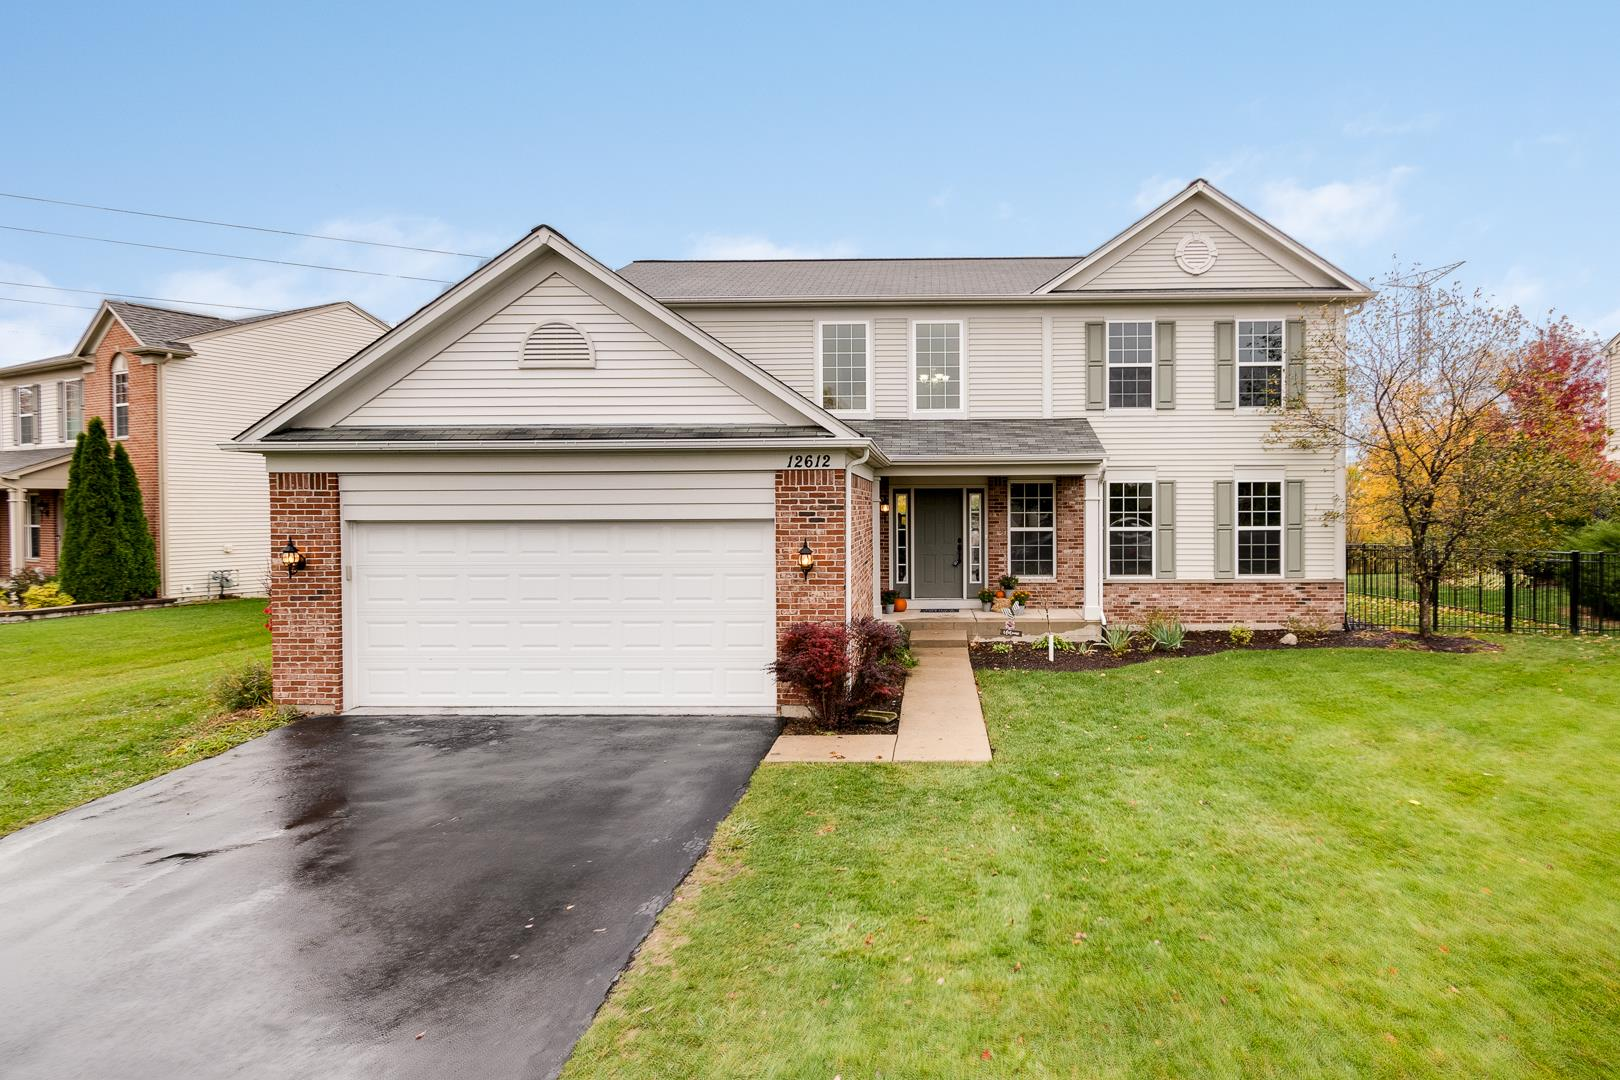 12612 BLUE IRIS Lane, Plainfield, IL 60585 - #: 10917210